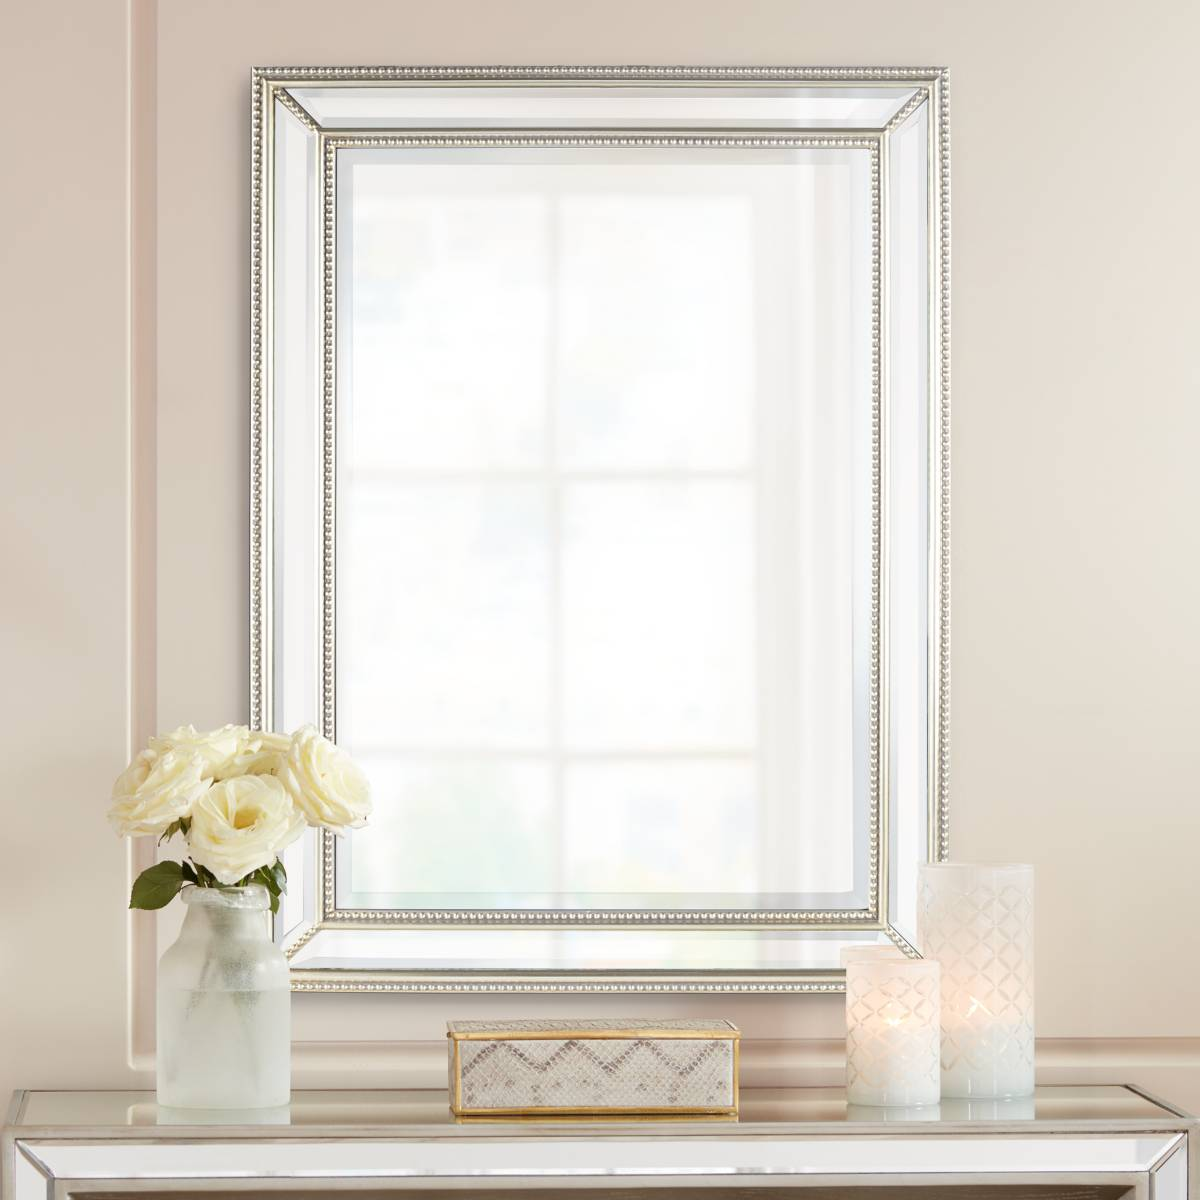 Lights Plus Decor: Wall Mirrors - Decorative Wall Mirror Designs